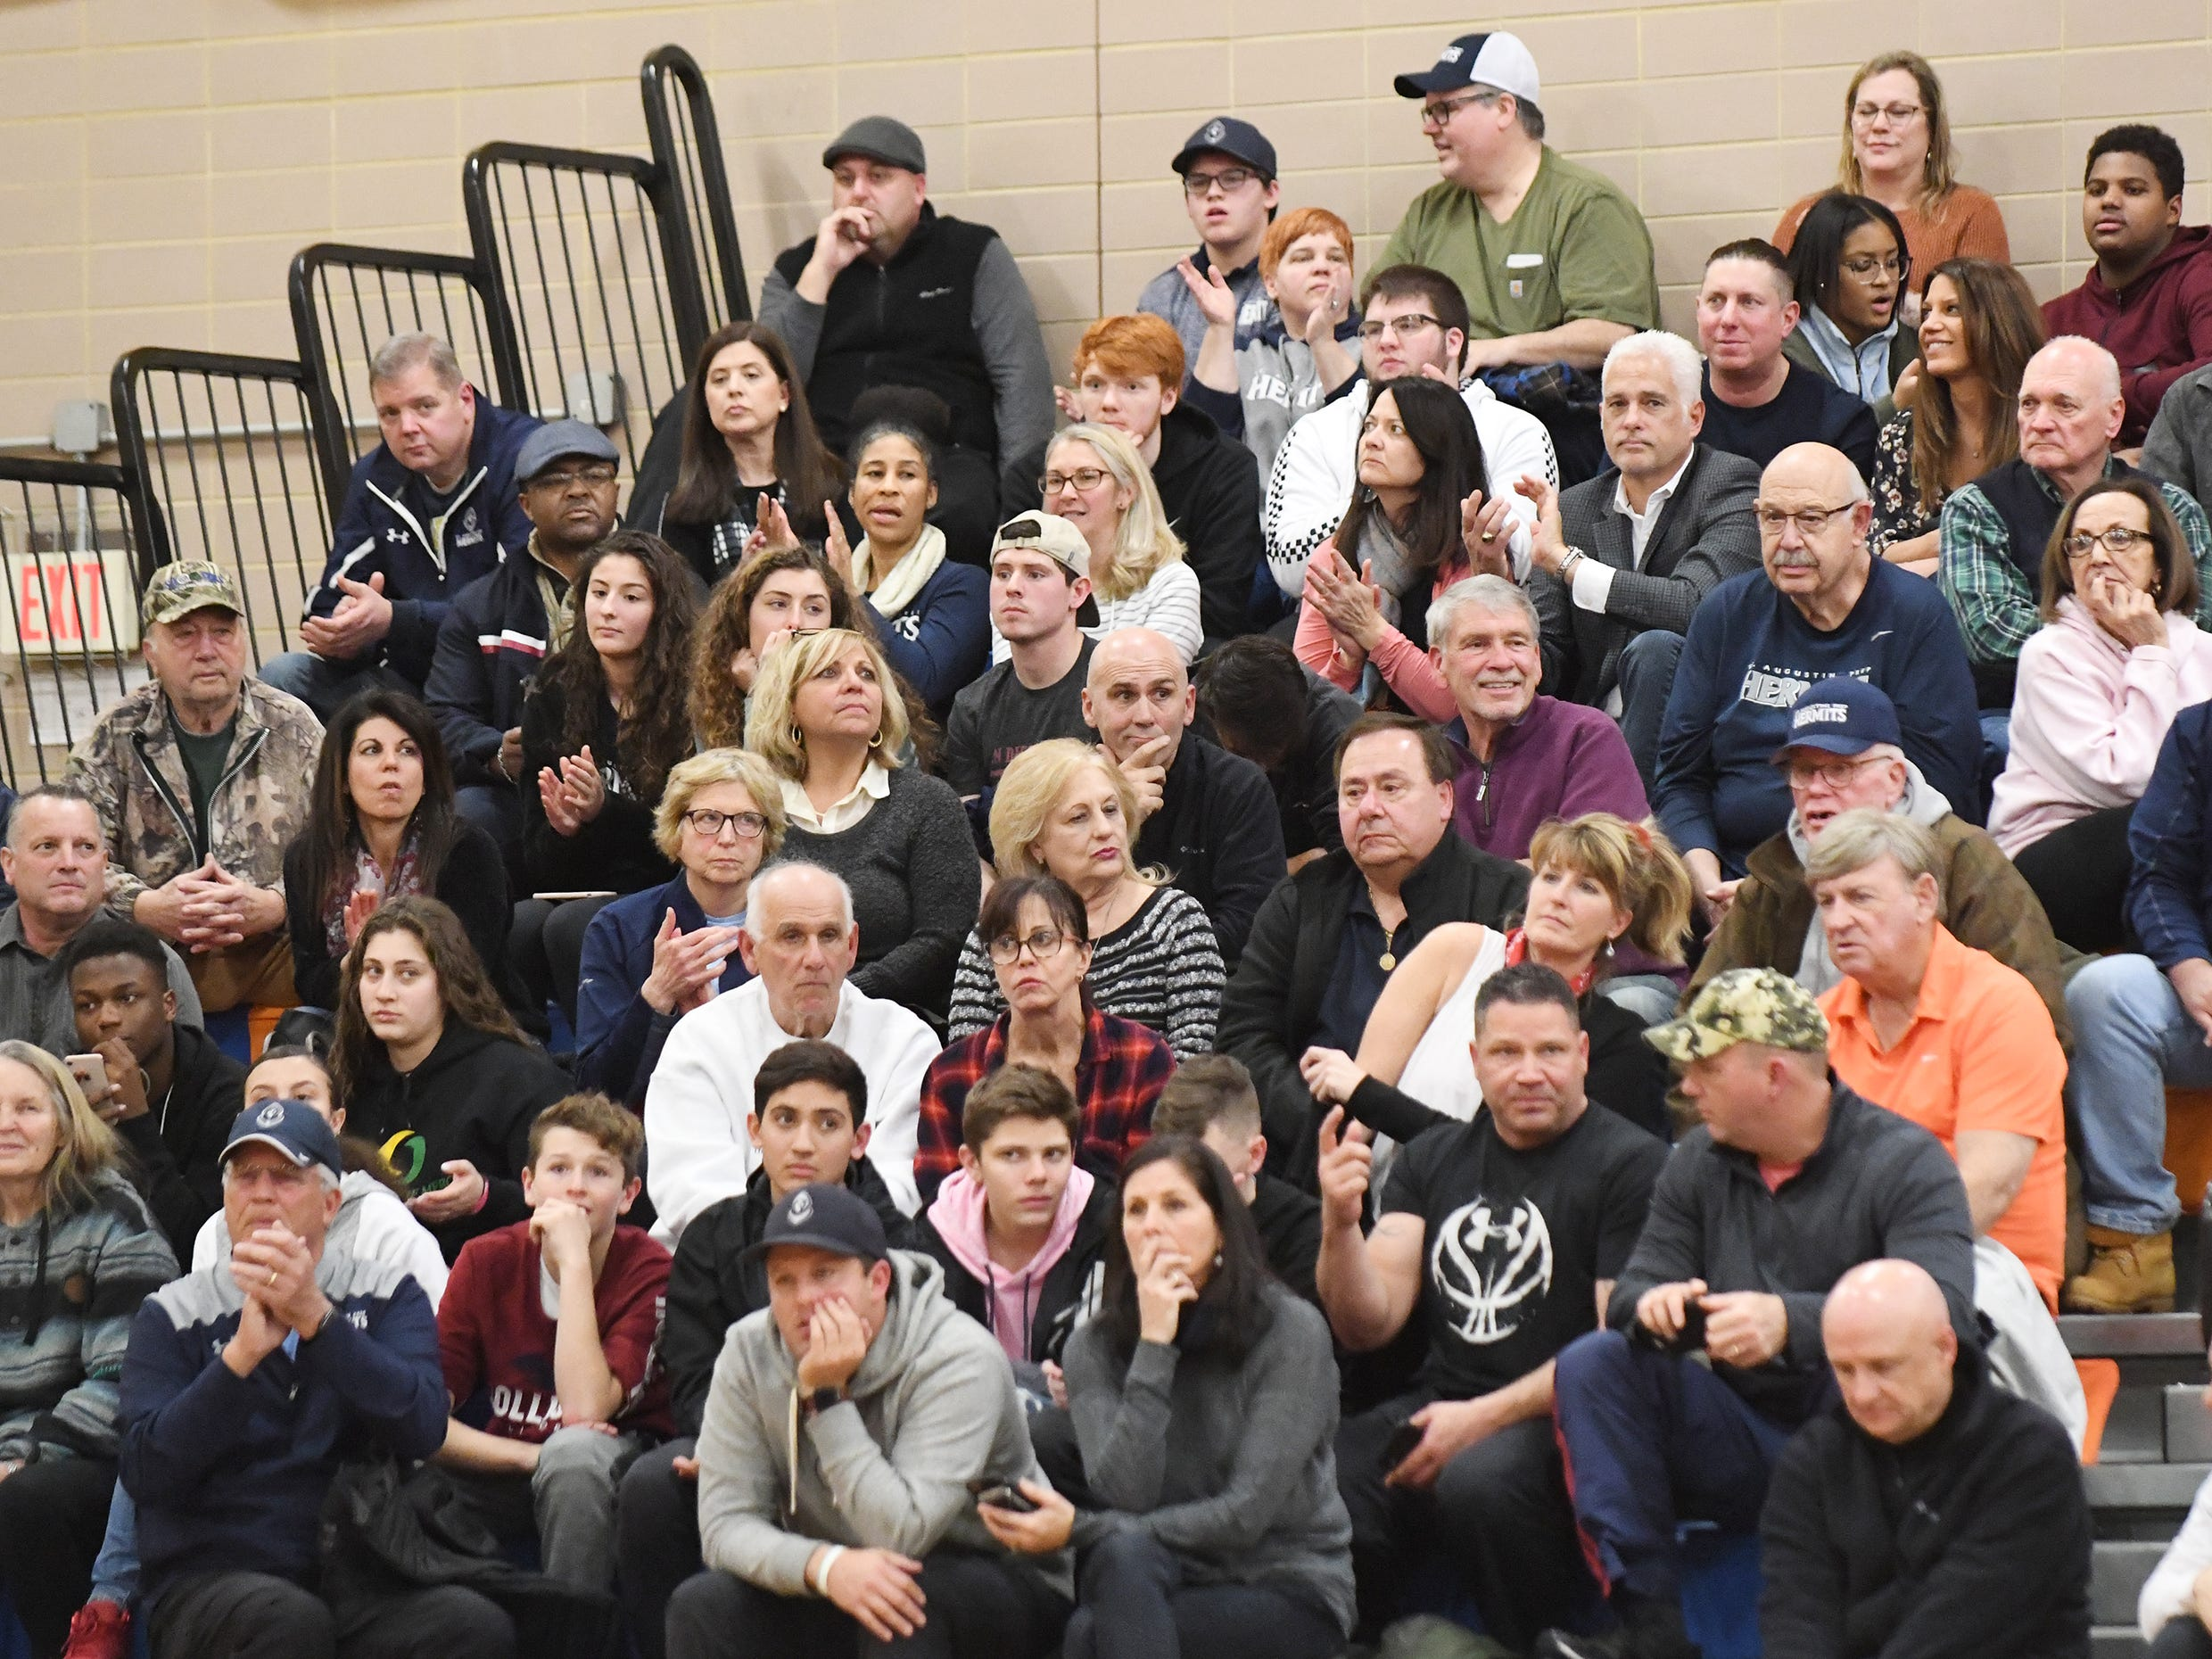 Visiting St. Augustine fans watch a game against Millville. The Hermits topped the Thunderbolts 66-53 on Friday, Jan. 18, 2019.